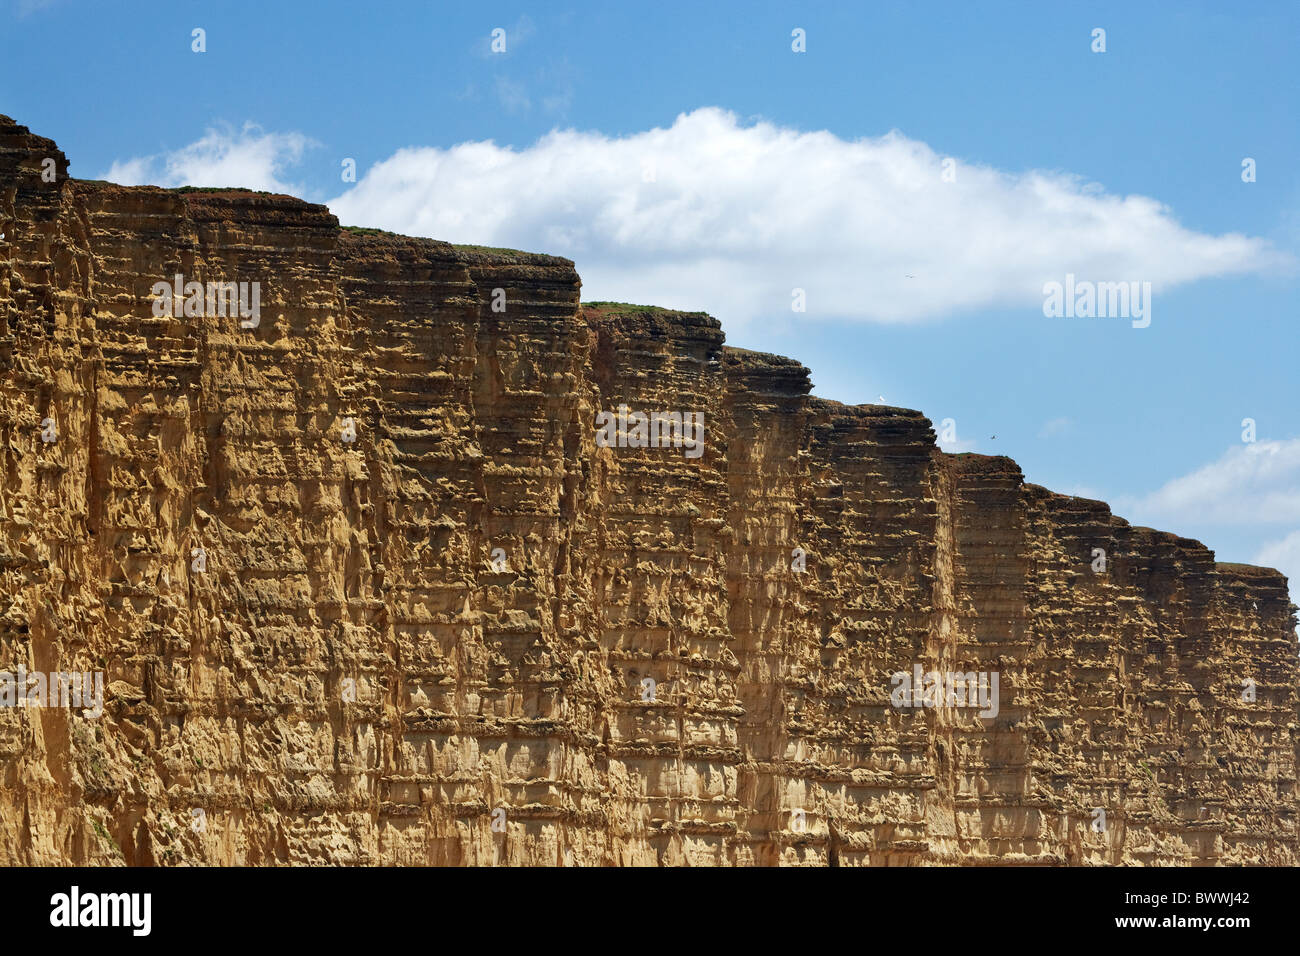 Sedimentary Layers in West Bay Cliffs, Jurassic Coast World Heritage Site, West Bay, Bridport, Dorset, England, - Stock Image